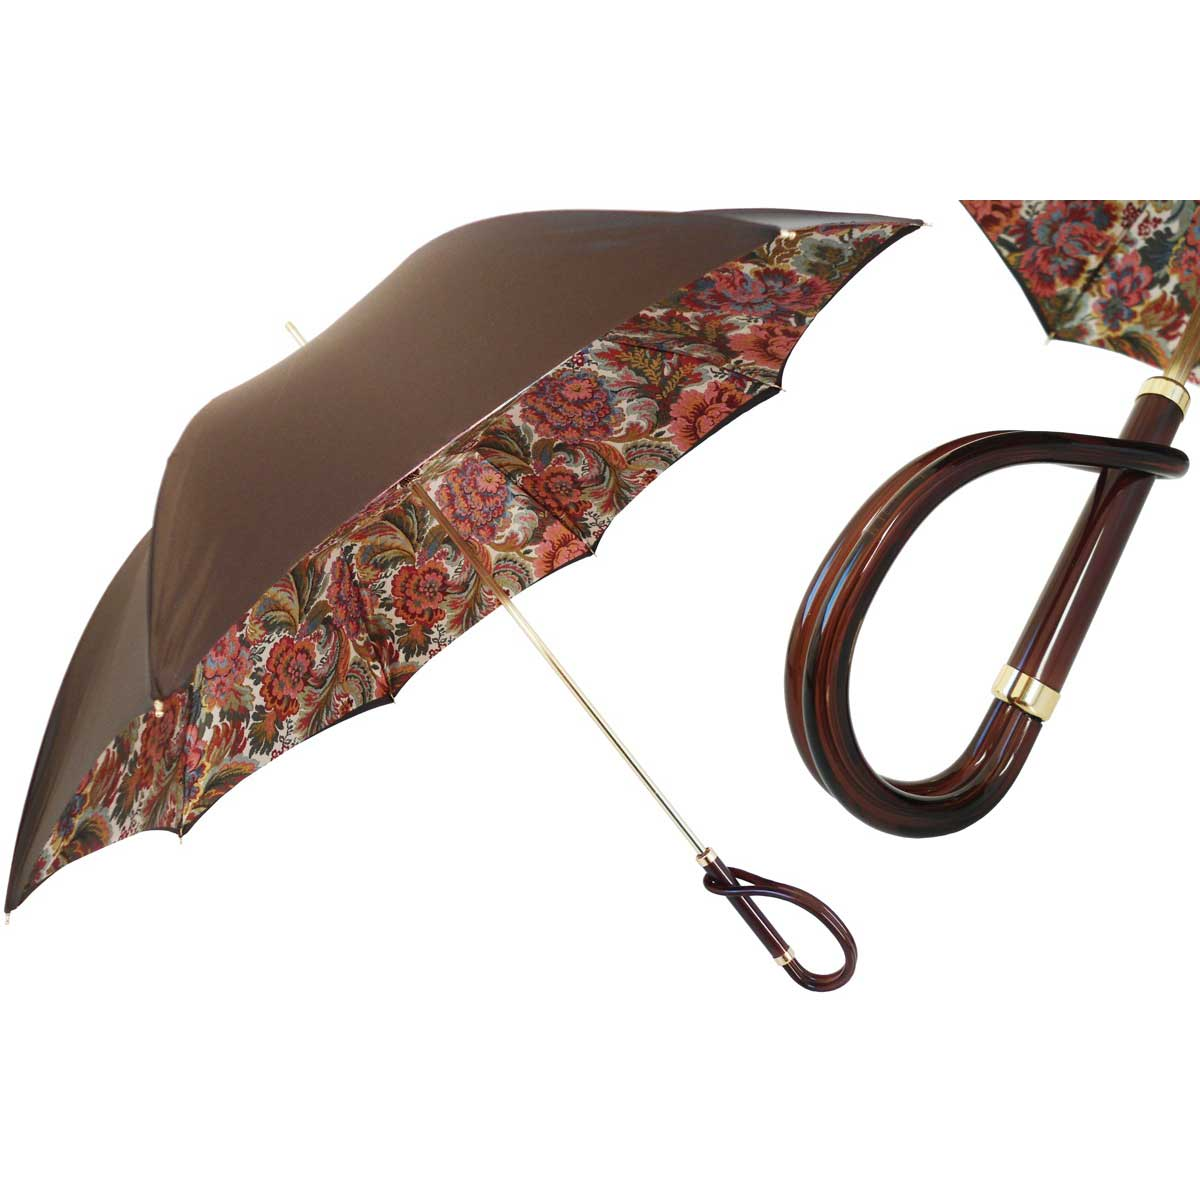 Pasotti Brown with Flowered Paisley Interior Women's Umbrella